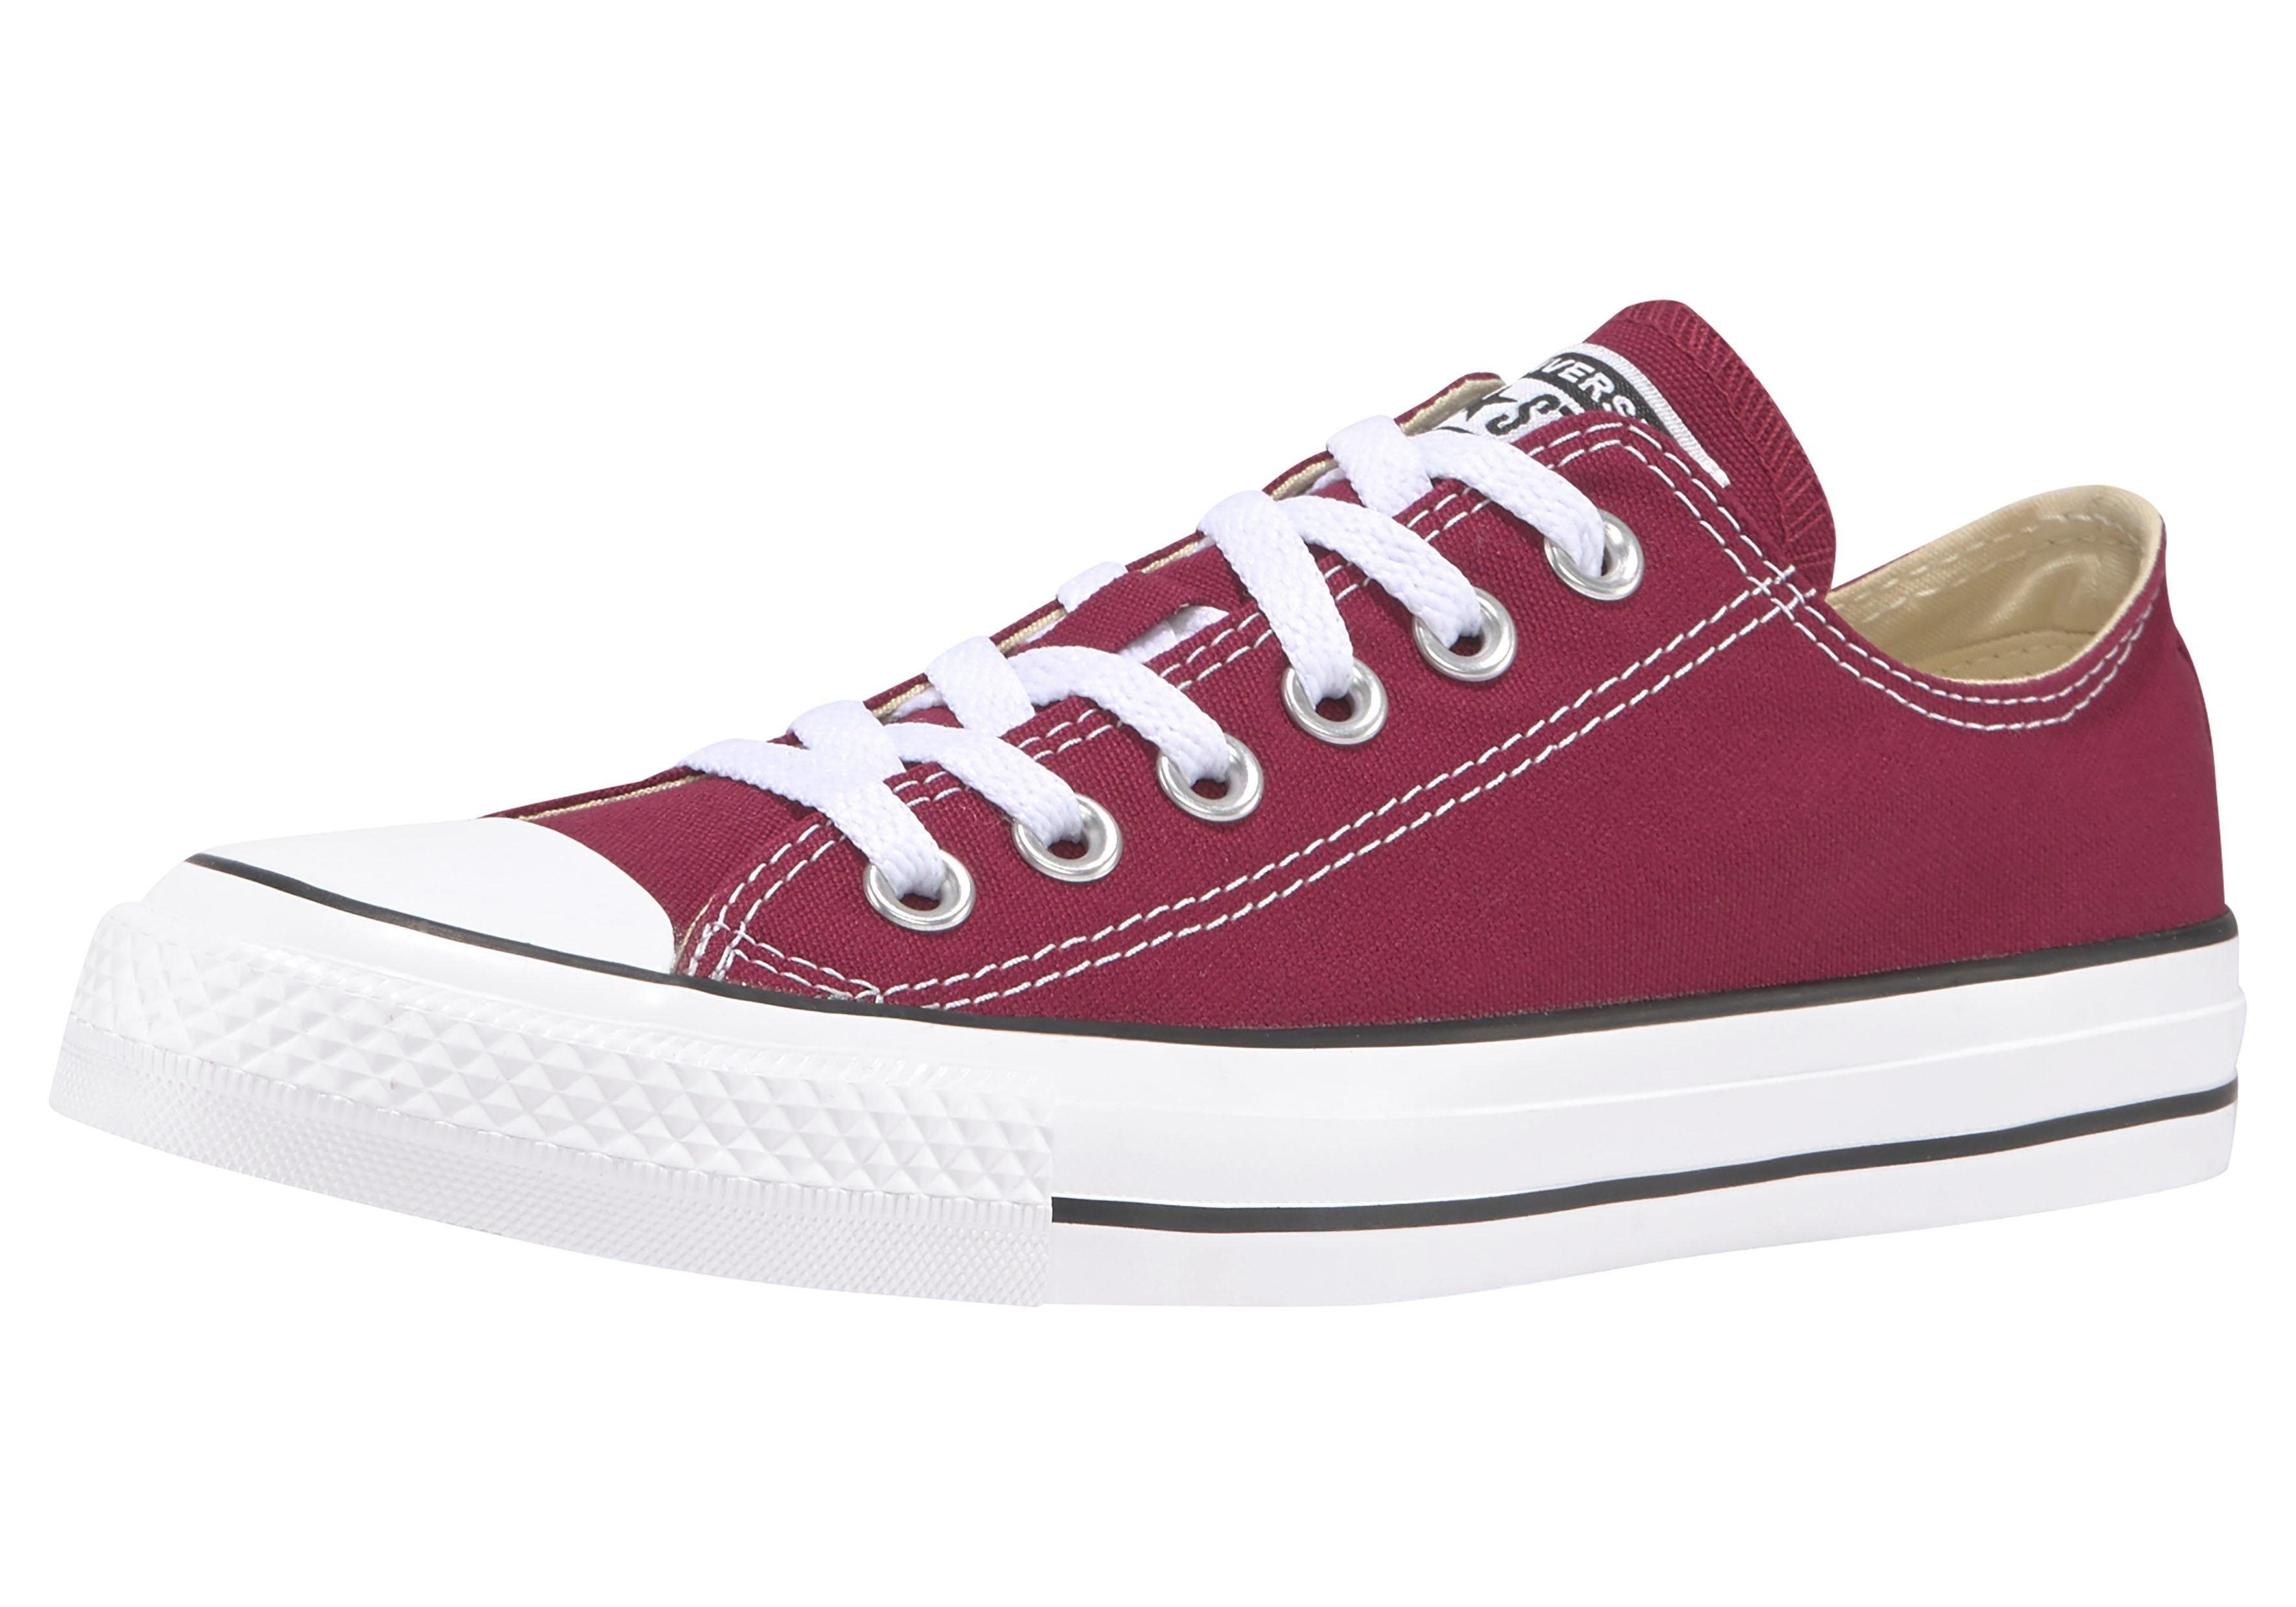 Converse »Chuck Taylor All Star Ox« Sneaker kaufen | OTTO